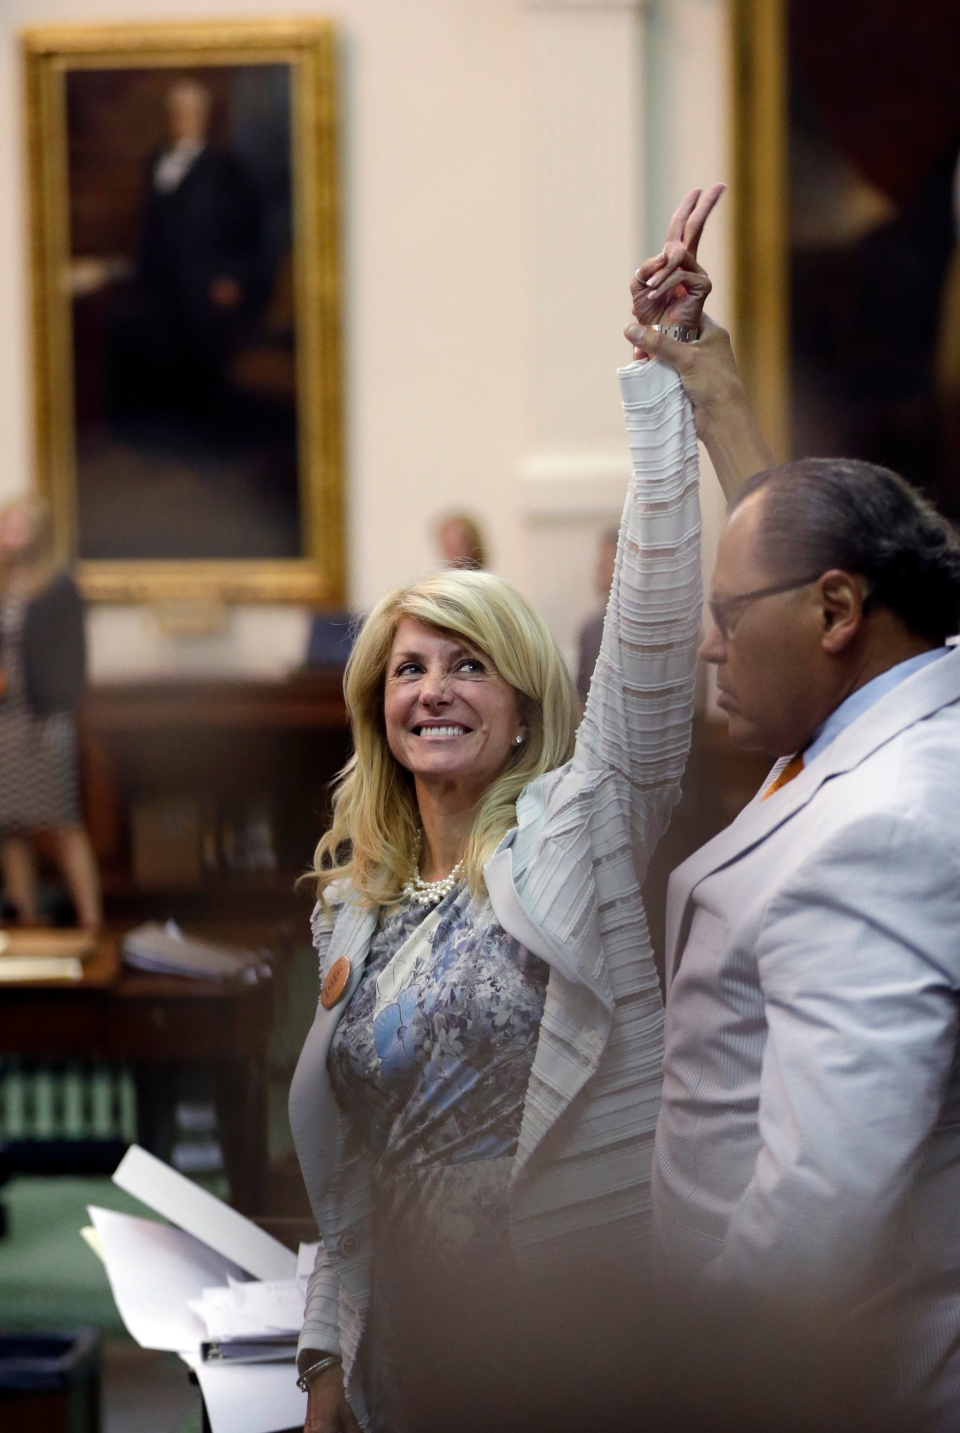 Sen. Wendy Davis, D-Fort Worth, left, who tries to filibuster an abortion bill, reacts as time expires, Wednesday, June 26, 2013, in Austin, Texas. (AP / Eric Gay)